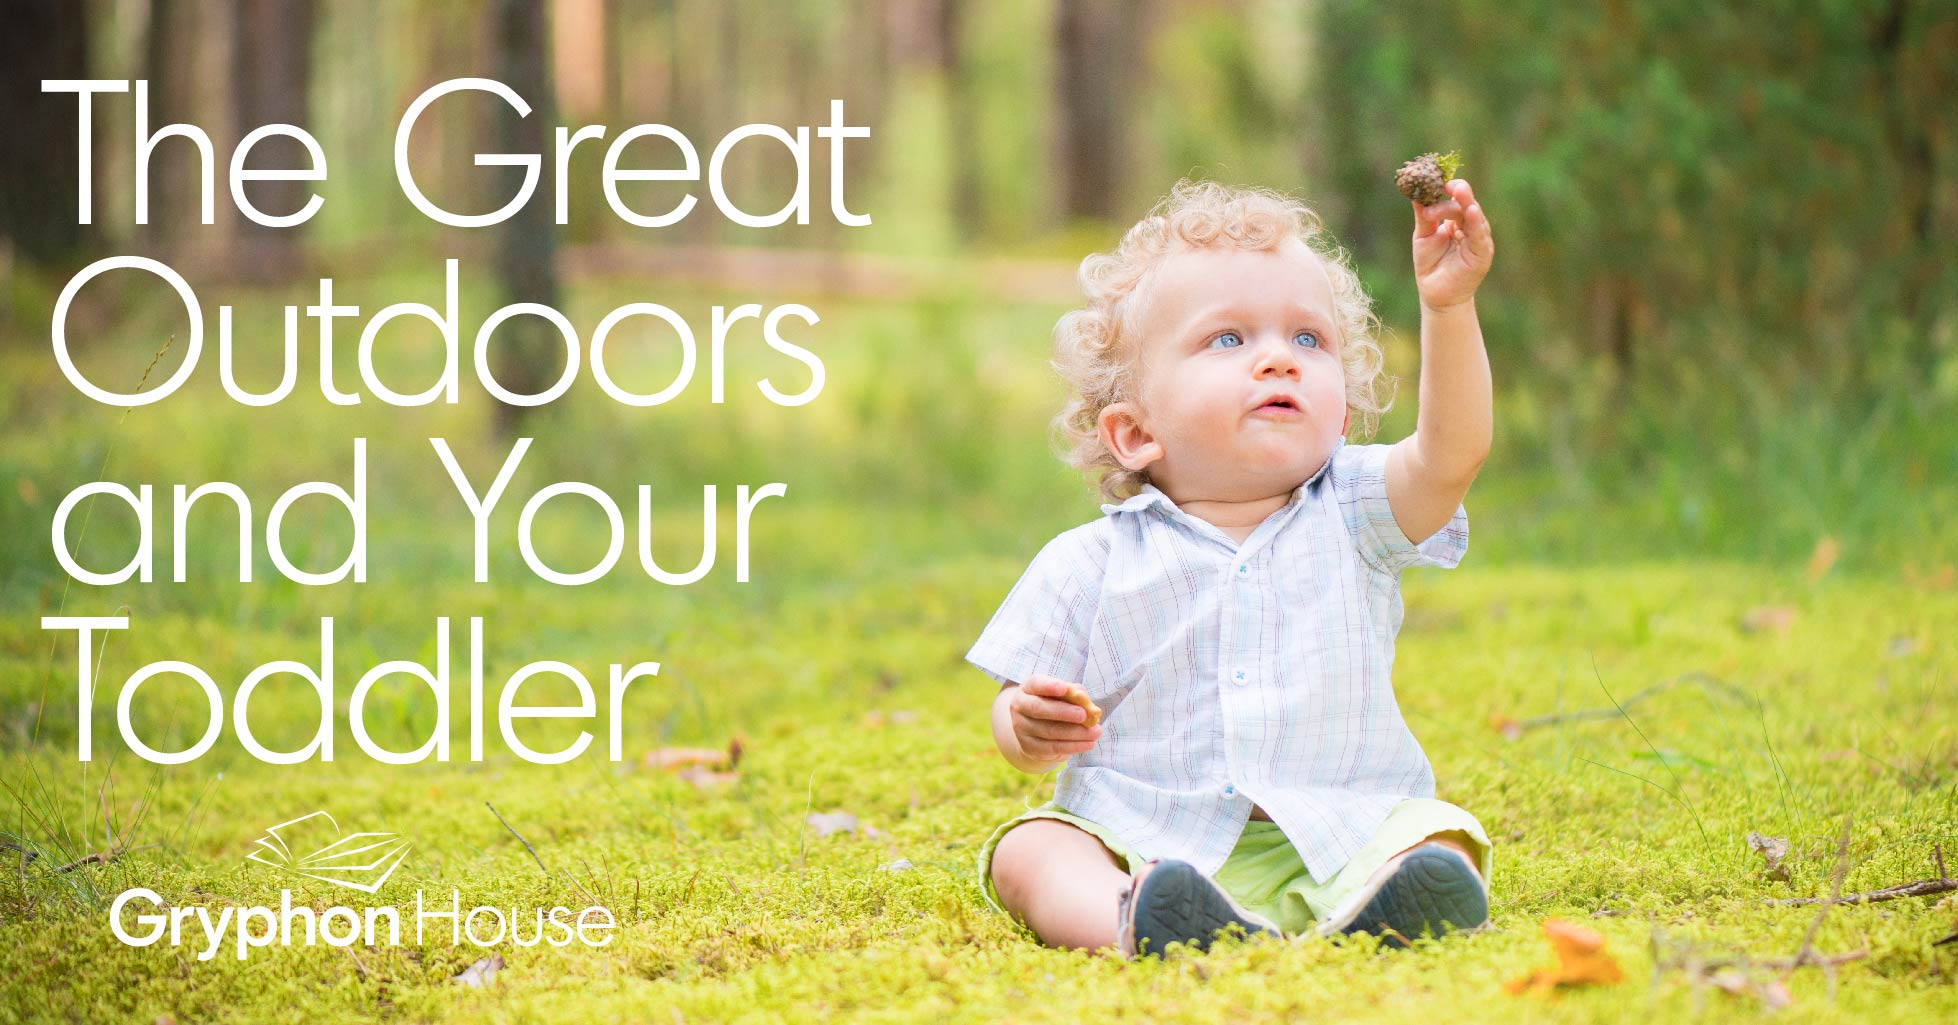 The Great Outdoors and Your Toddler | Gryphon House